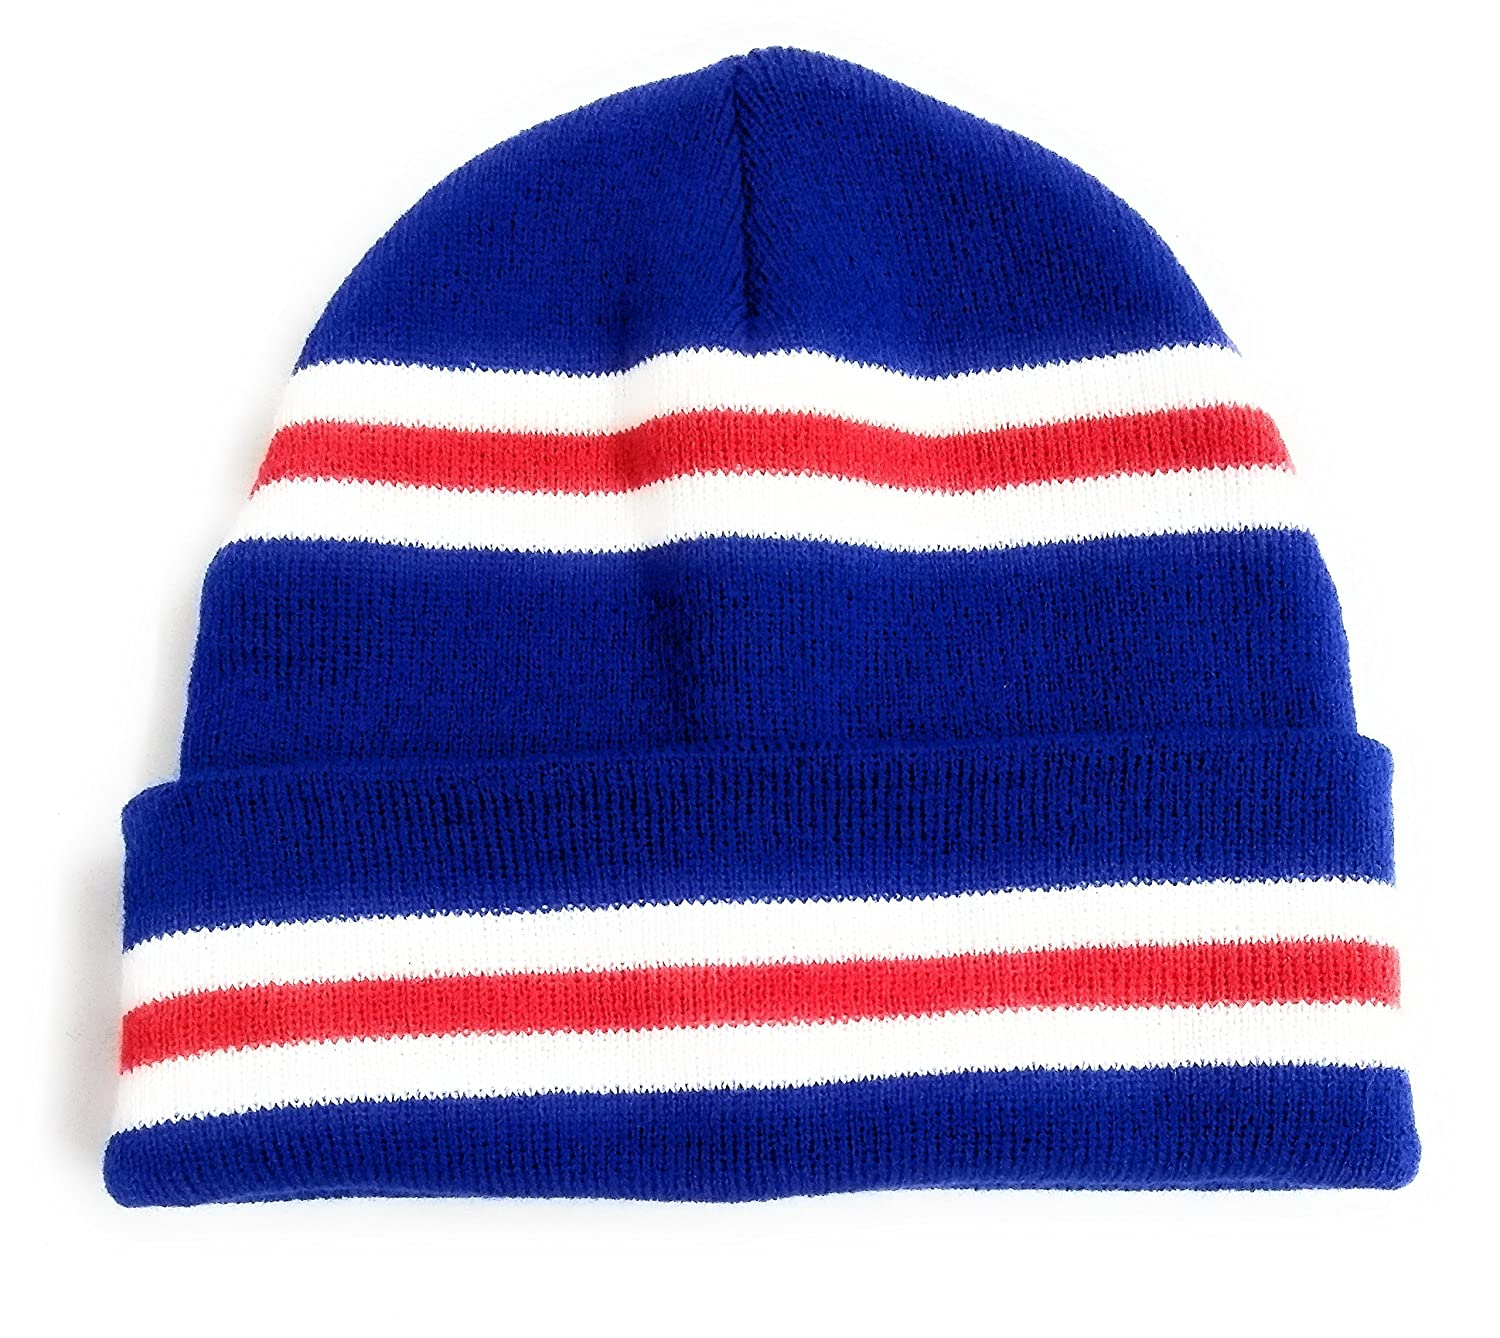 ebabbd169 Rangers colours Blue Red & White Stripe Retro Beanie Hat Double ...